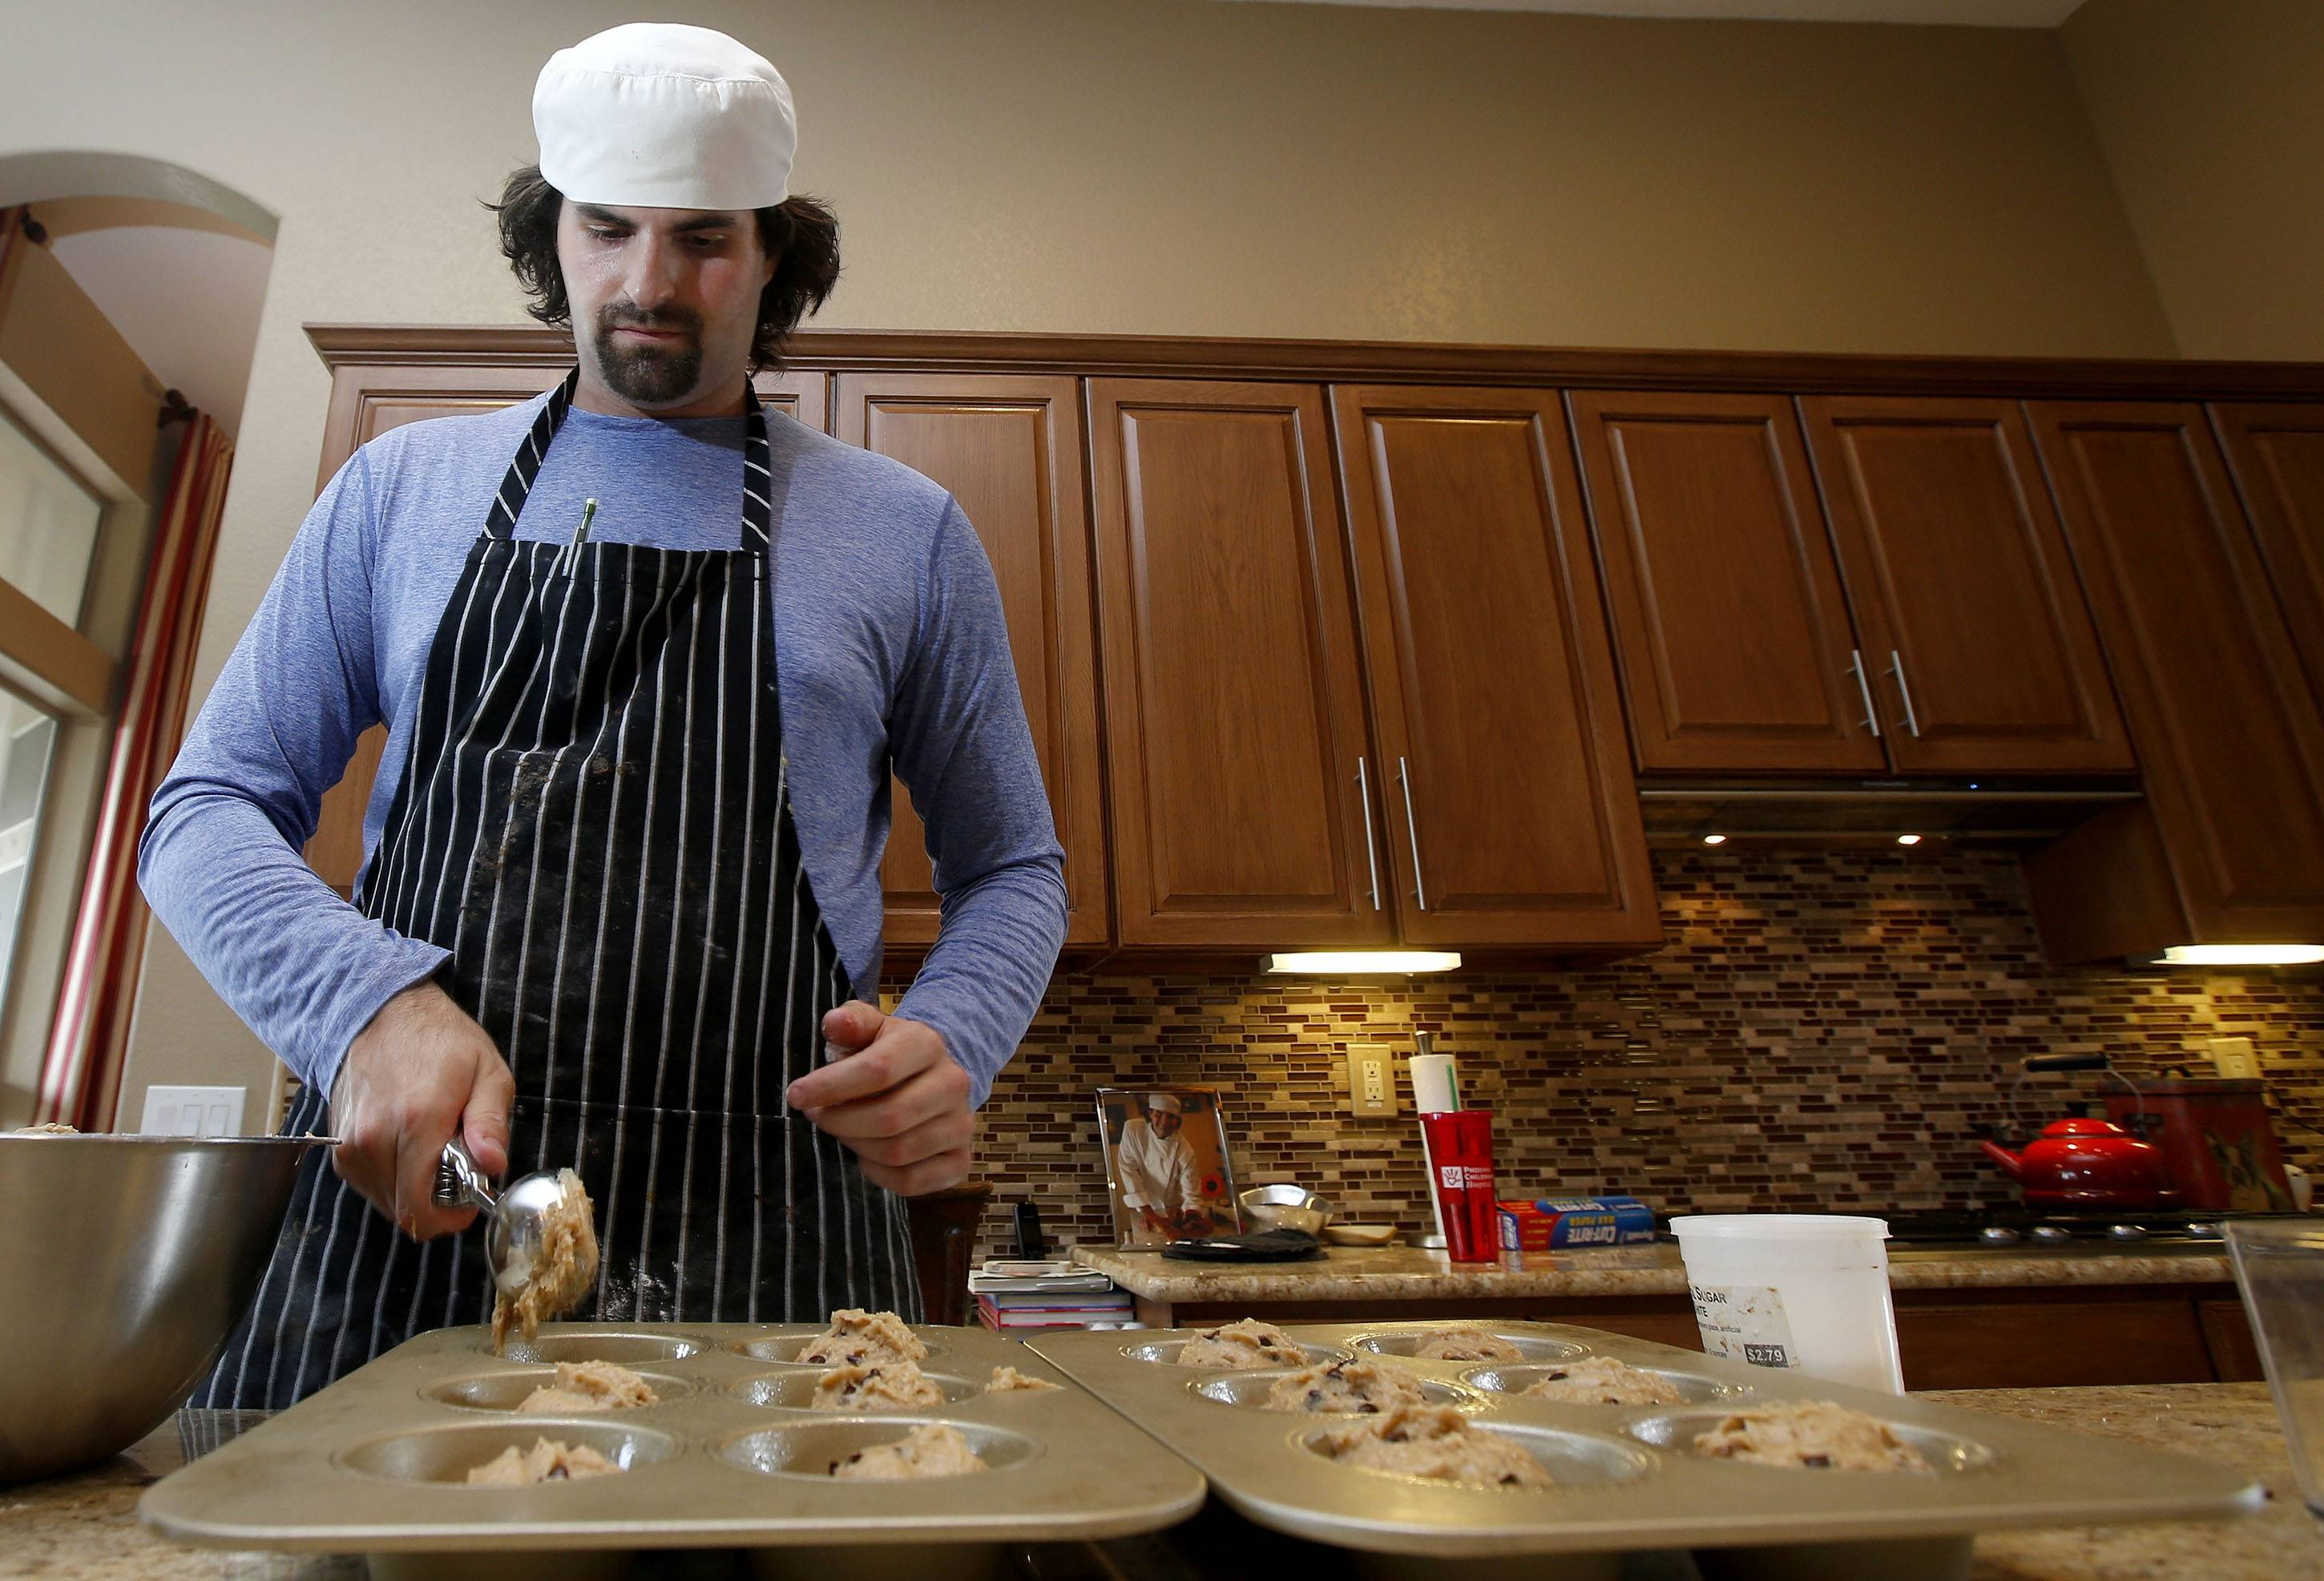 In this July 15, 2014 photo, Matt Cottle, owner of Stuttering King Bakery, works a new batch of chocolate chip banana muffins in his parents' kitchen in Scottsdale, Ariz. Cottle is one of a few known small business owners with autism, a brain disorder that affects a person's ability to comprehend, communicate and interact socially.